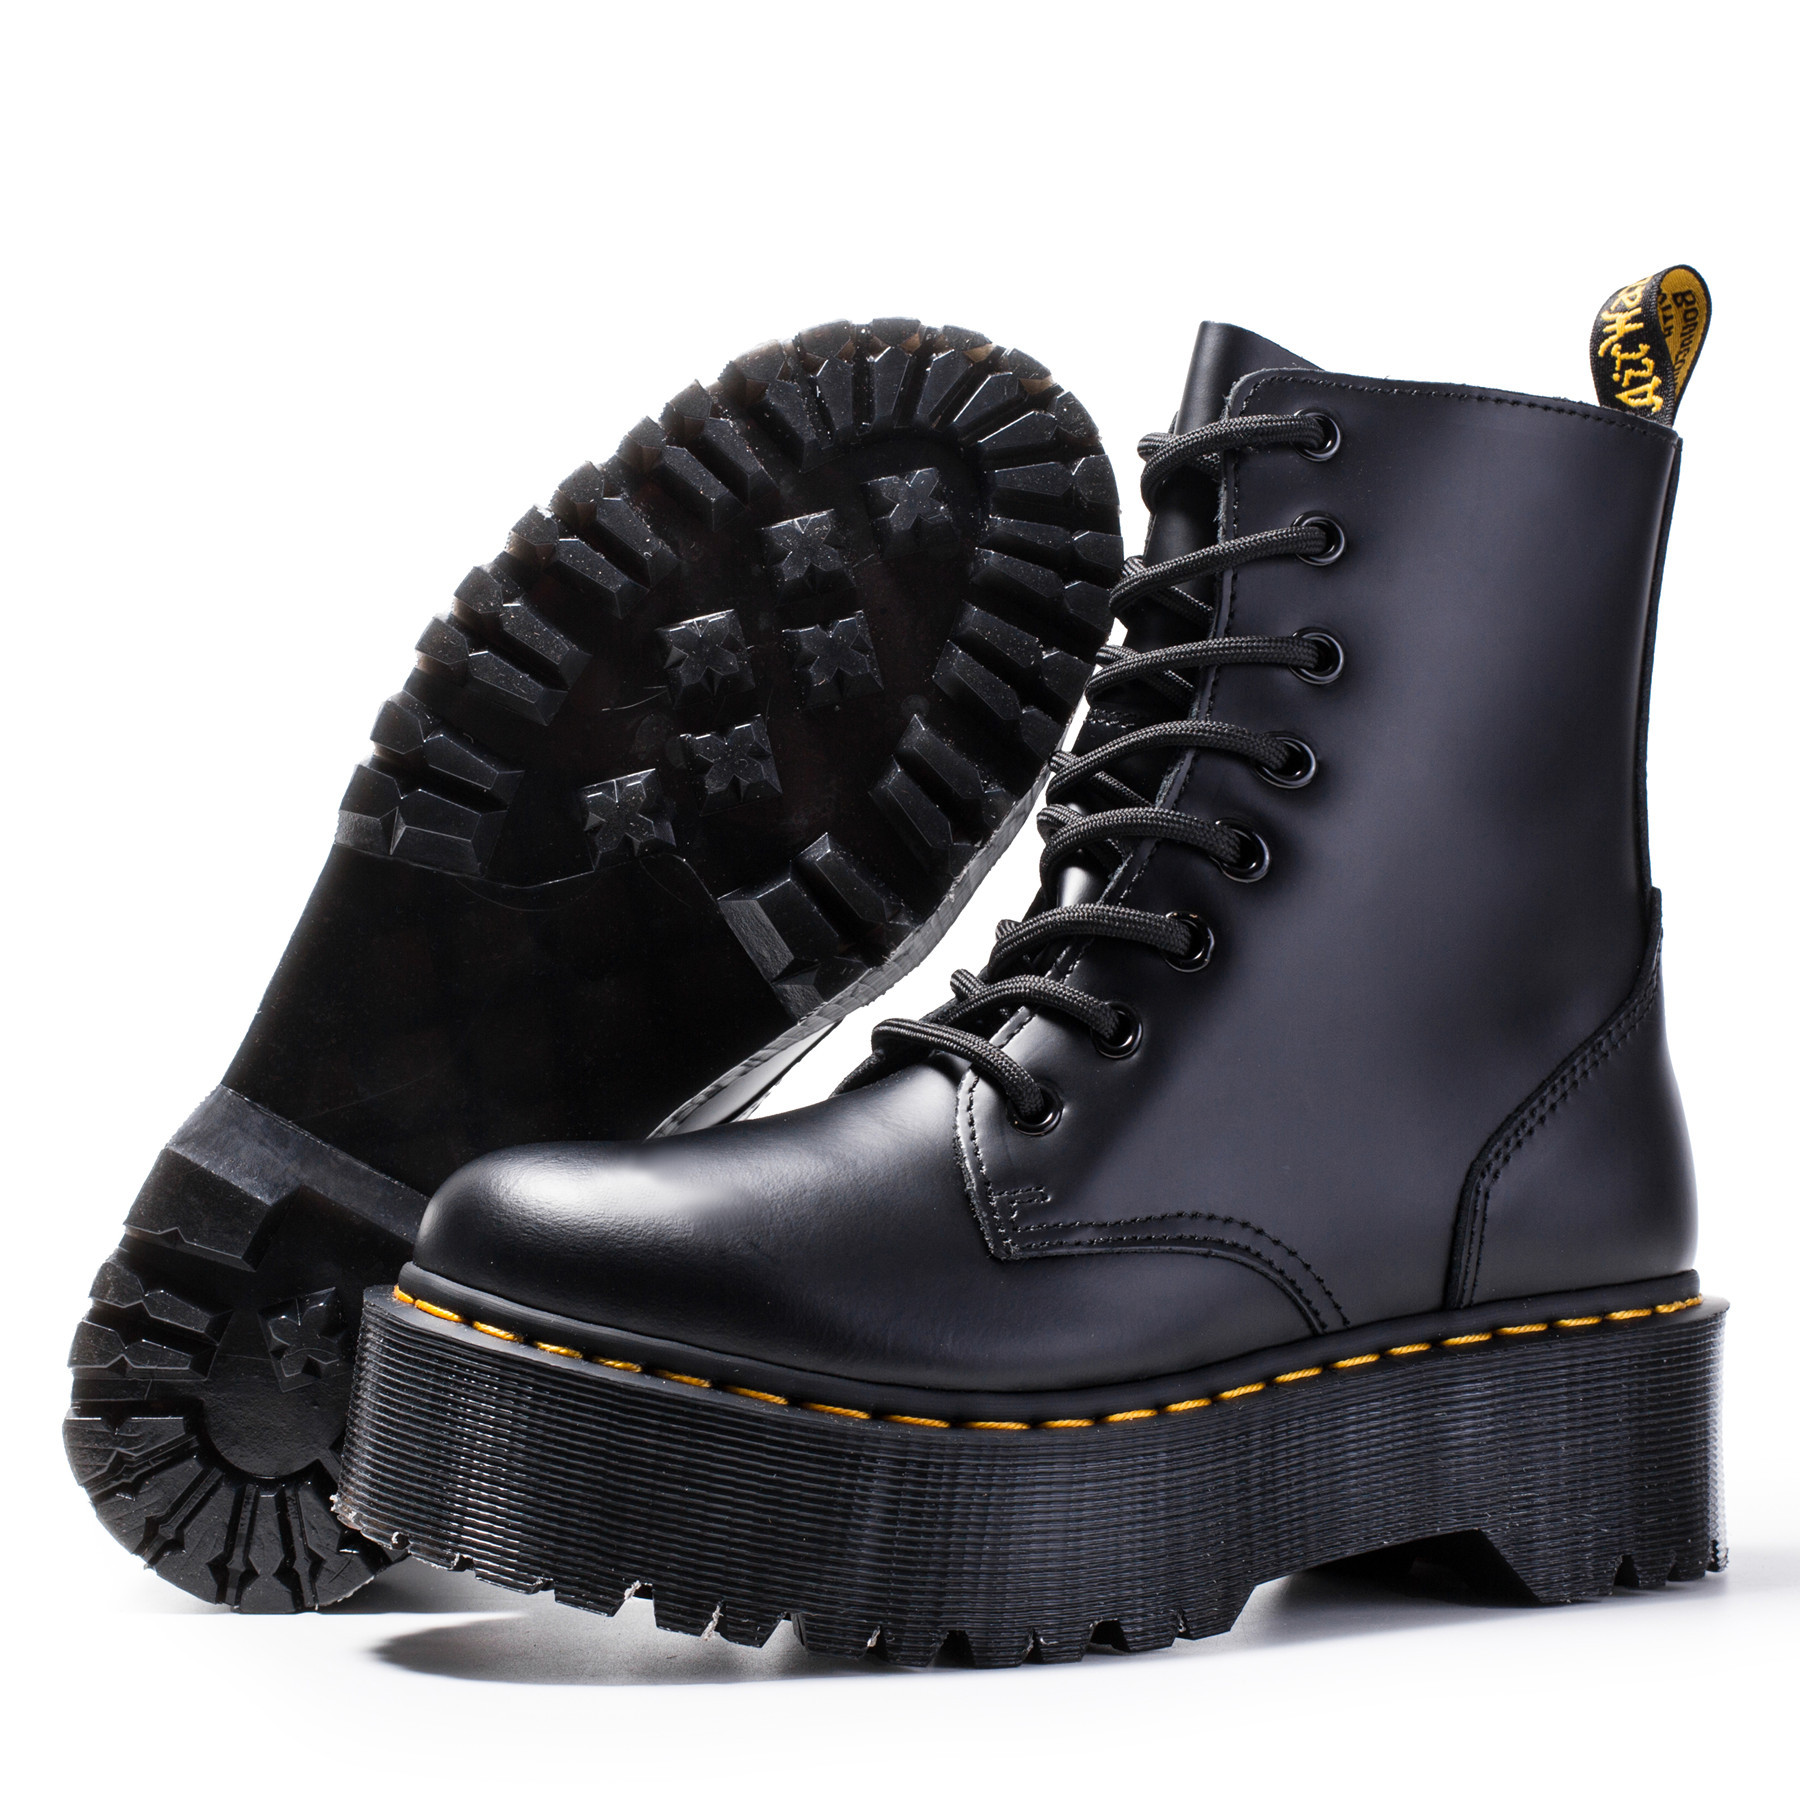 Boots Black Shoes Heel Motorcycle-Shoes Platform Winter Genuine-Leather Women Ankle Dr